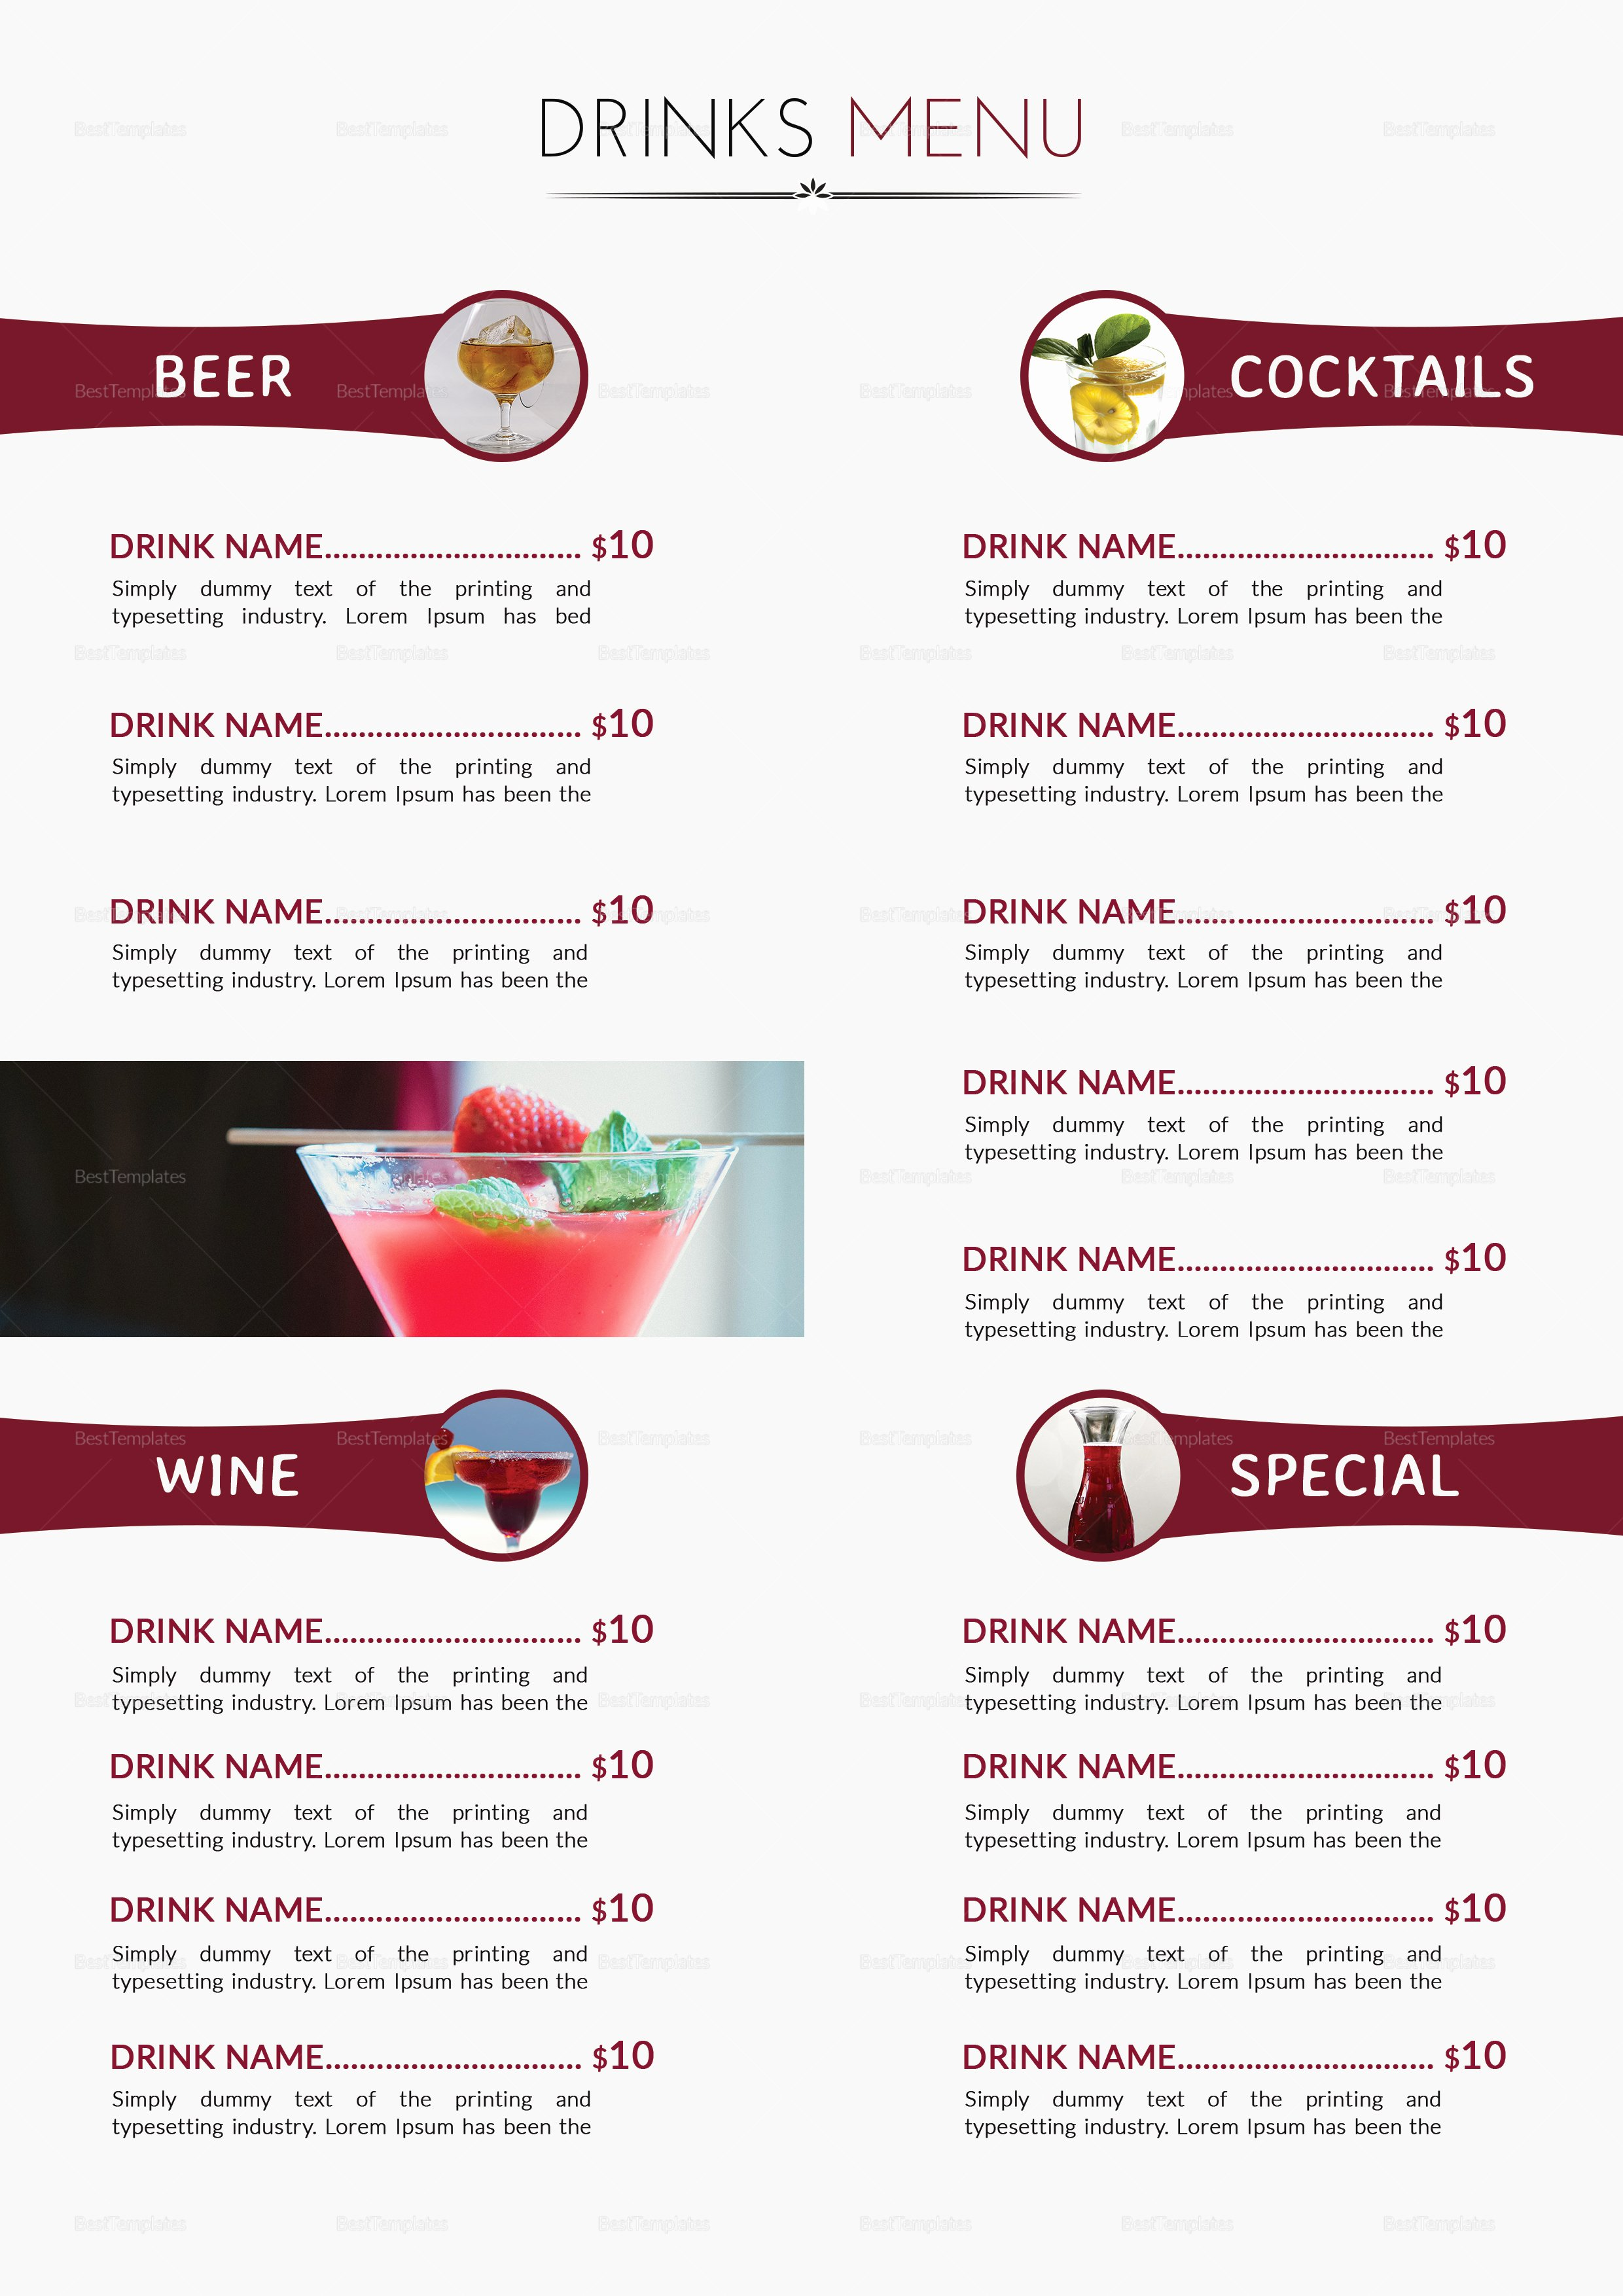 Drinks Menu Templates Free Lovely Cocktail Drinks Menu Design Template In Psd Word Publisher